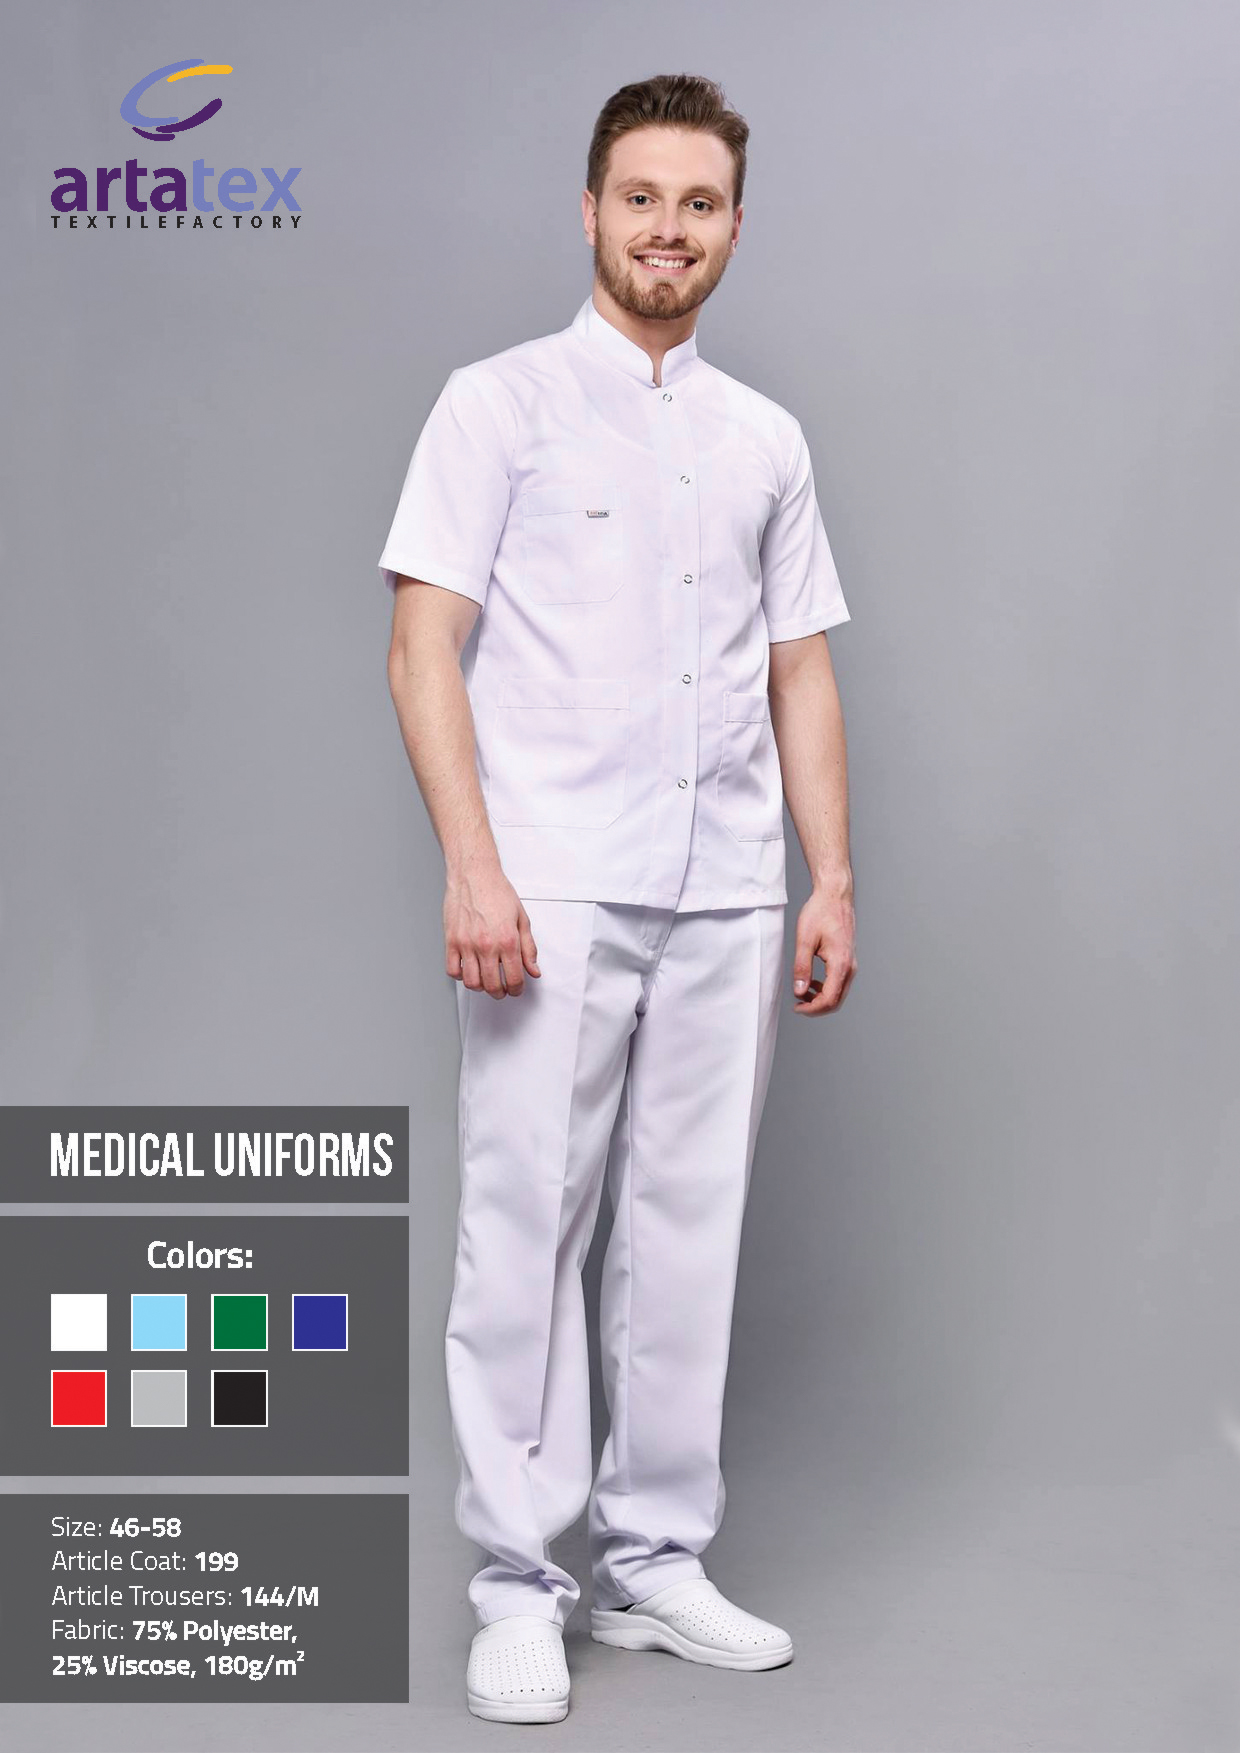 ArtaTex - Medical Uniforms